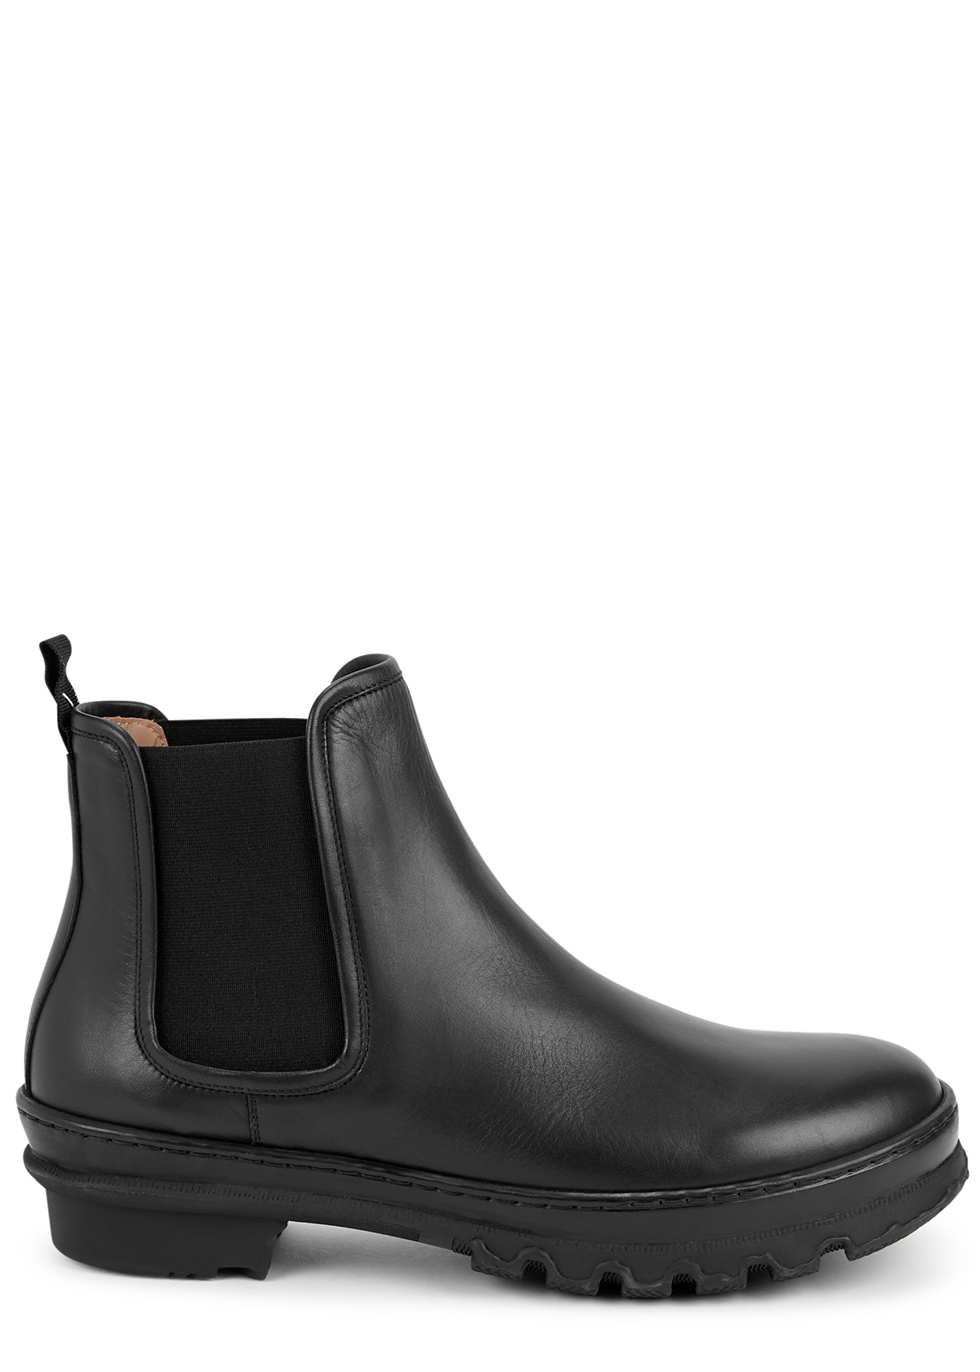 Garden black leather ankle boots